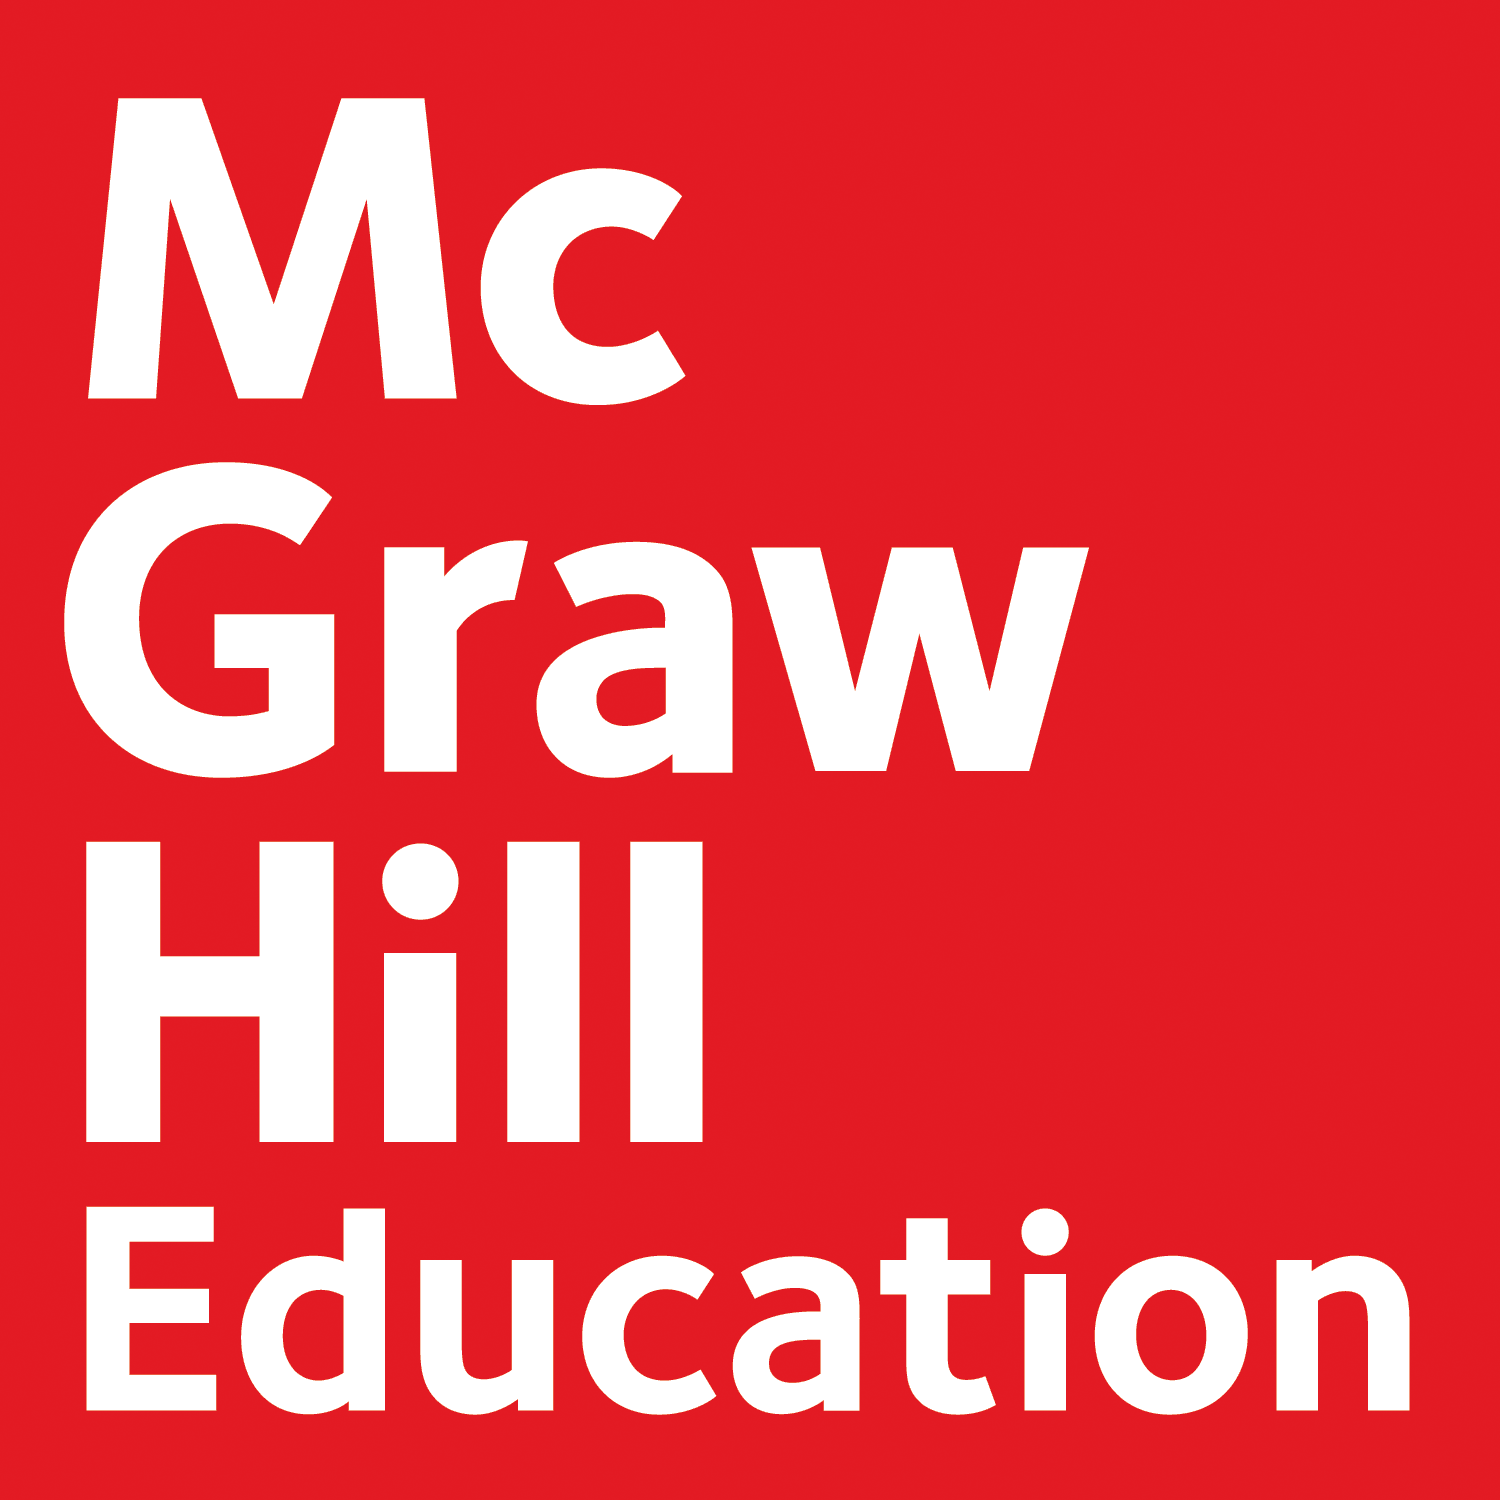 http://www.mheducation.com/